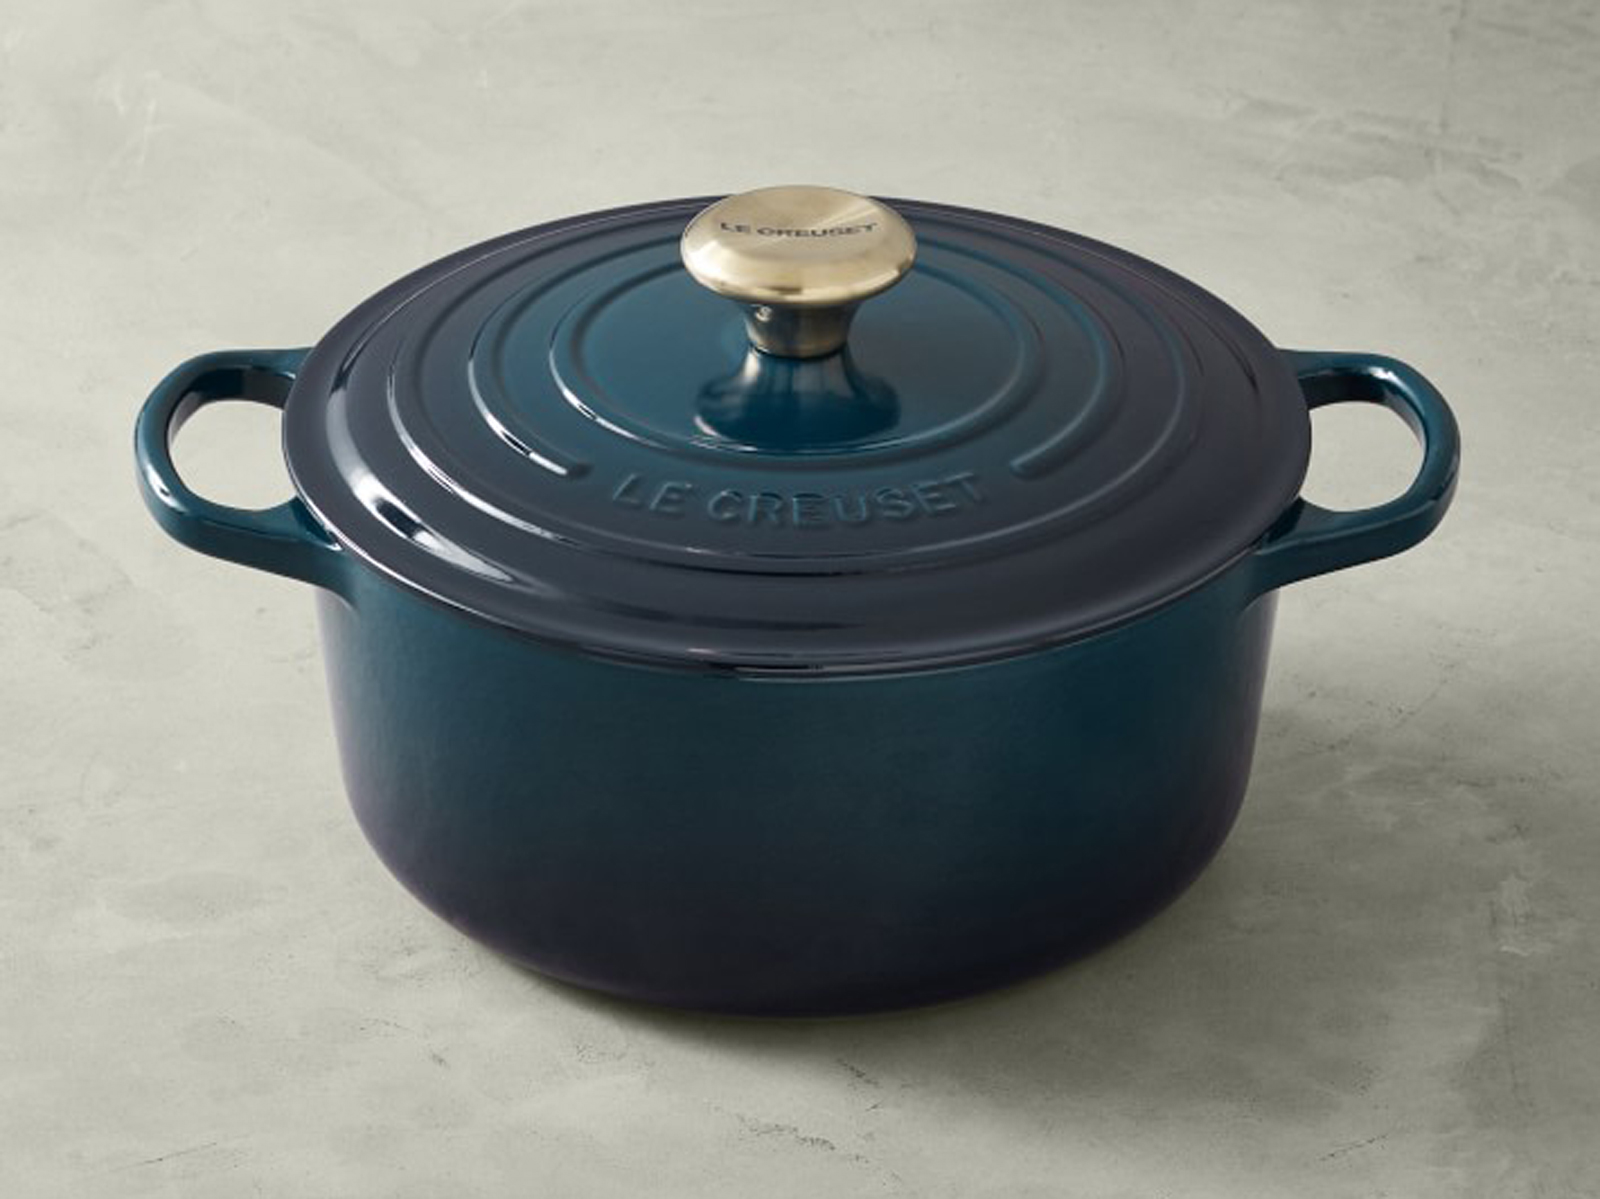 Le Creuset agave dutch oven